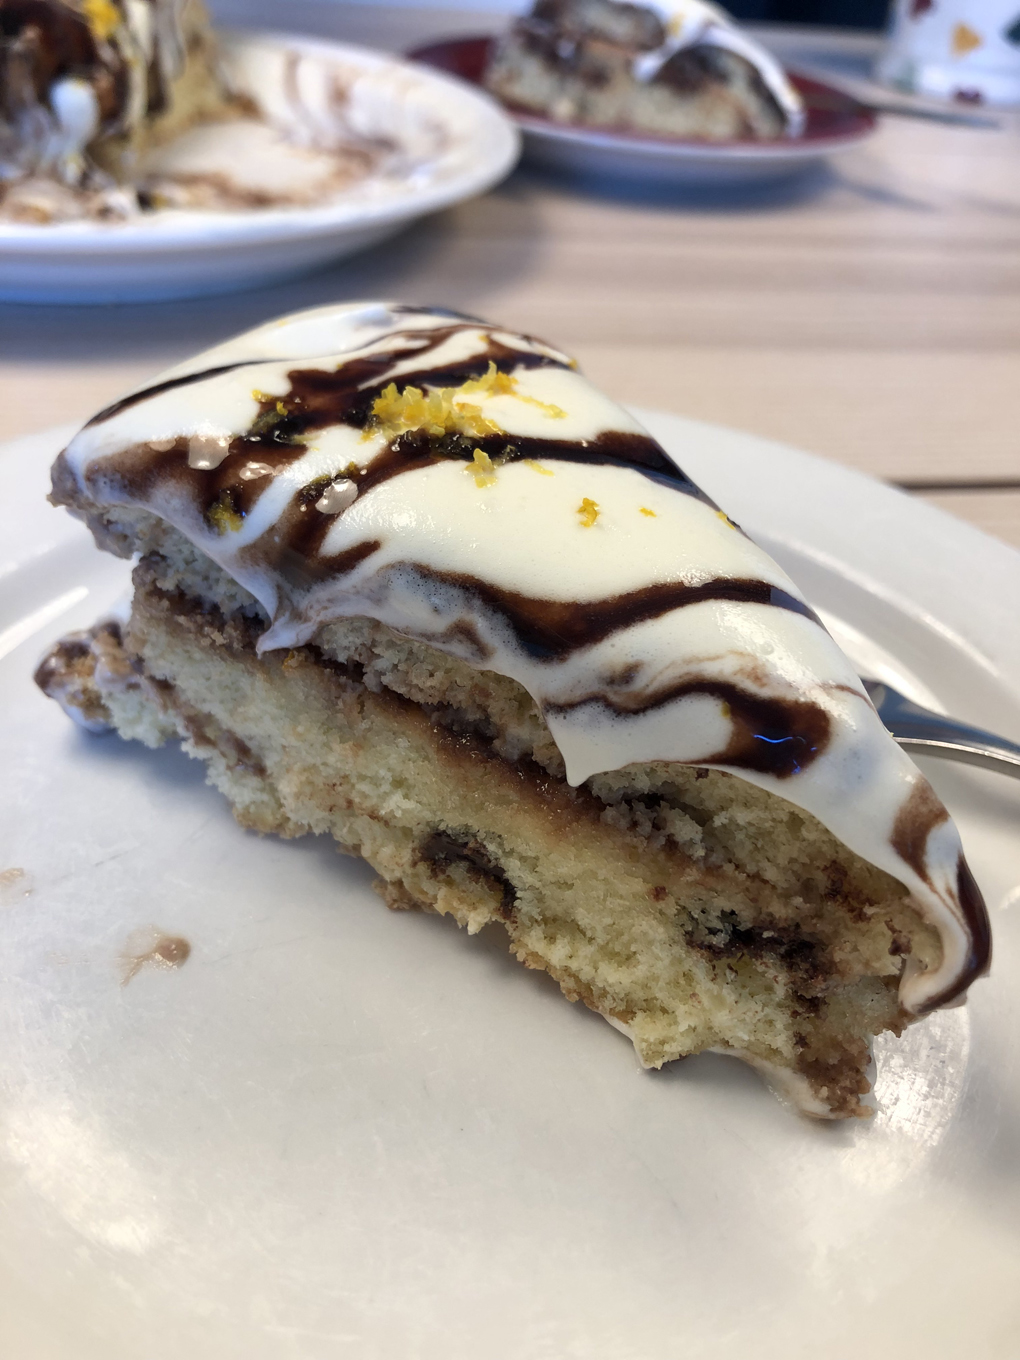 A slice of cake with creamy topping